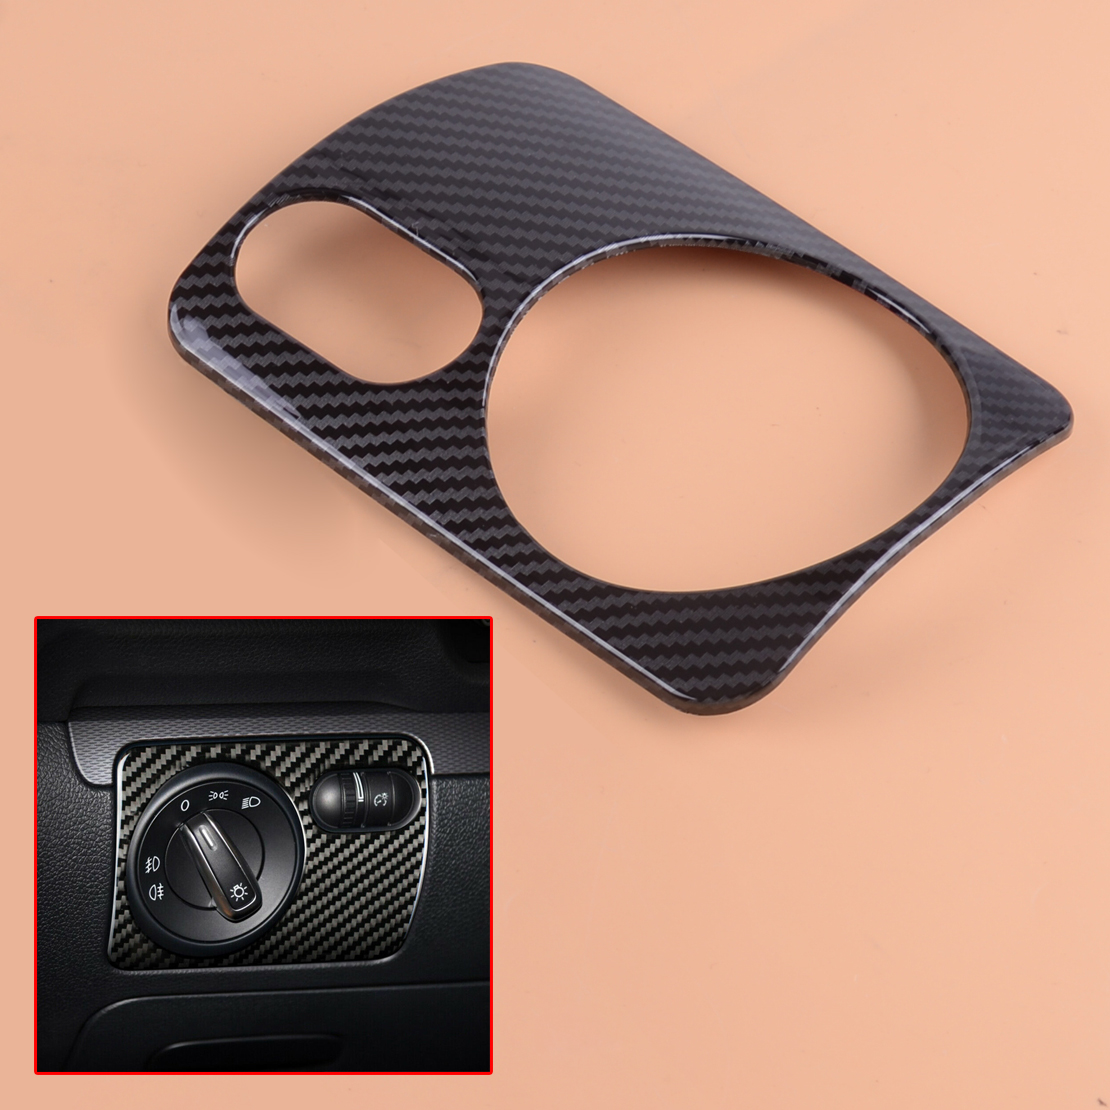 beler Car ABS Carbon Fiber Style LHD Front Headlight Switch Cover Trim Fit for VW Golf 6 MK6 GTI 2008 2009 2010 2011 2012 image